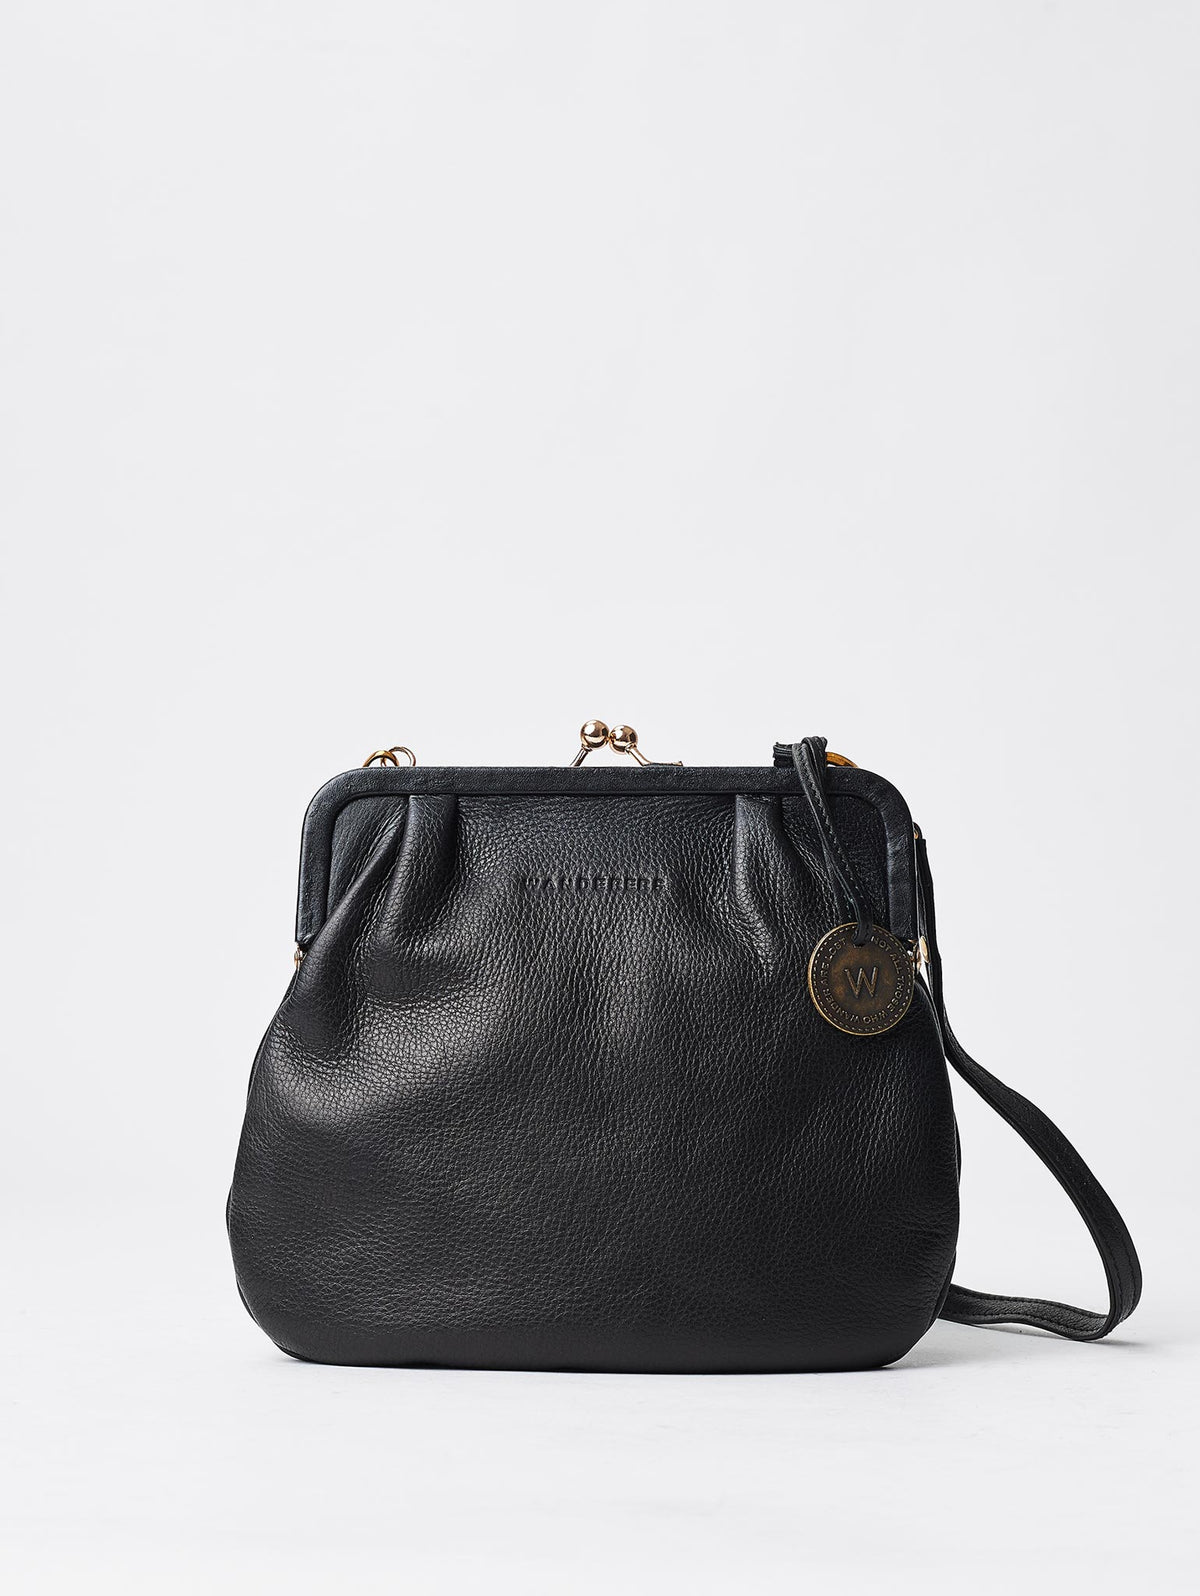 The Versailles Evening Crossbody